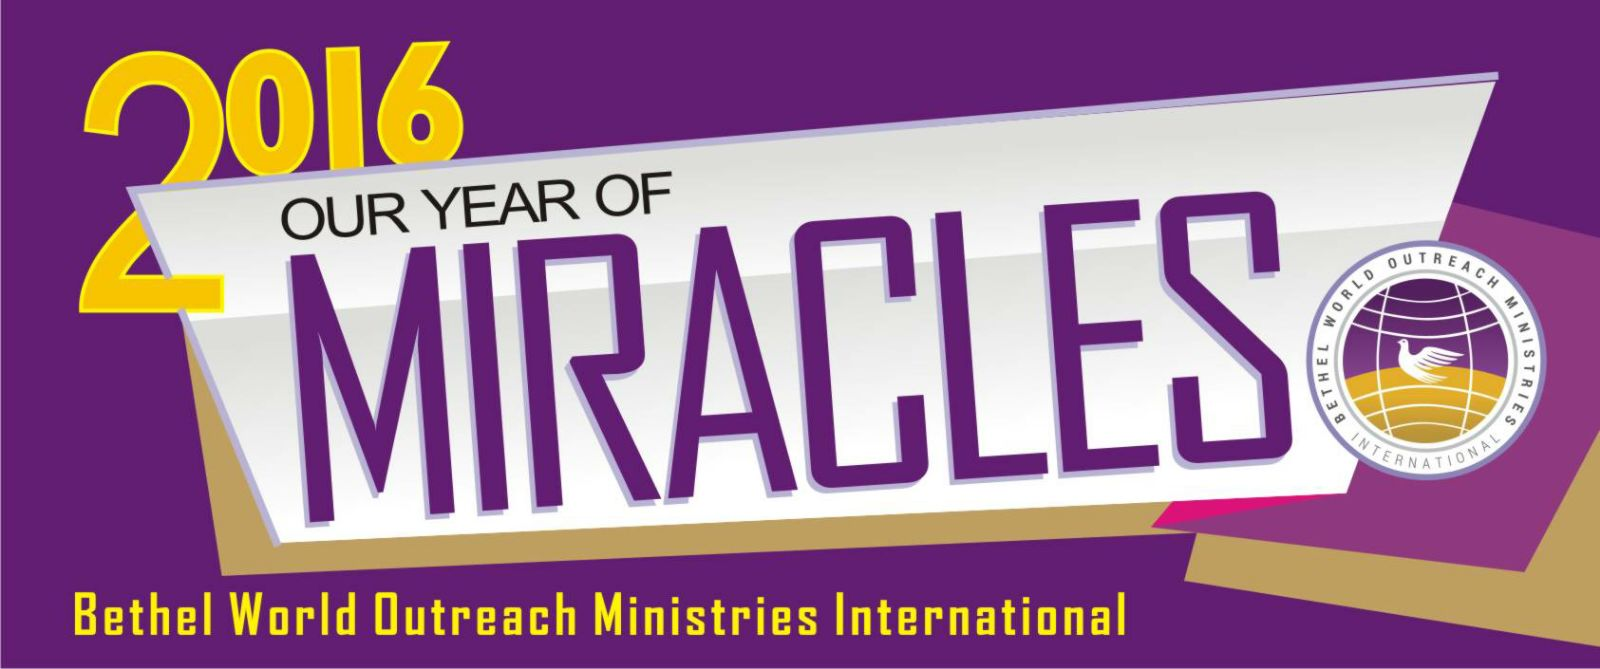 BWOMI 2016 Theme - Our Year of Miracles